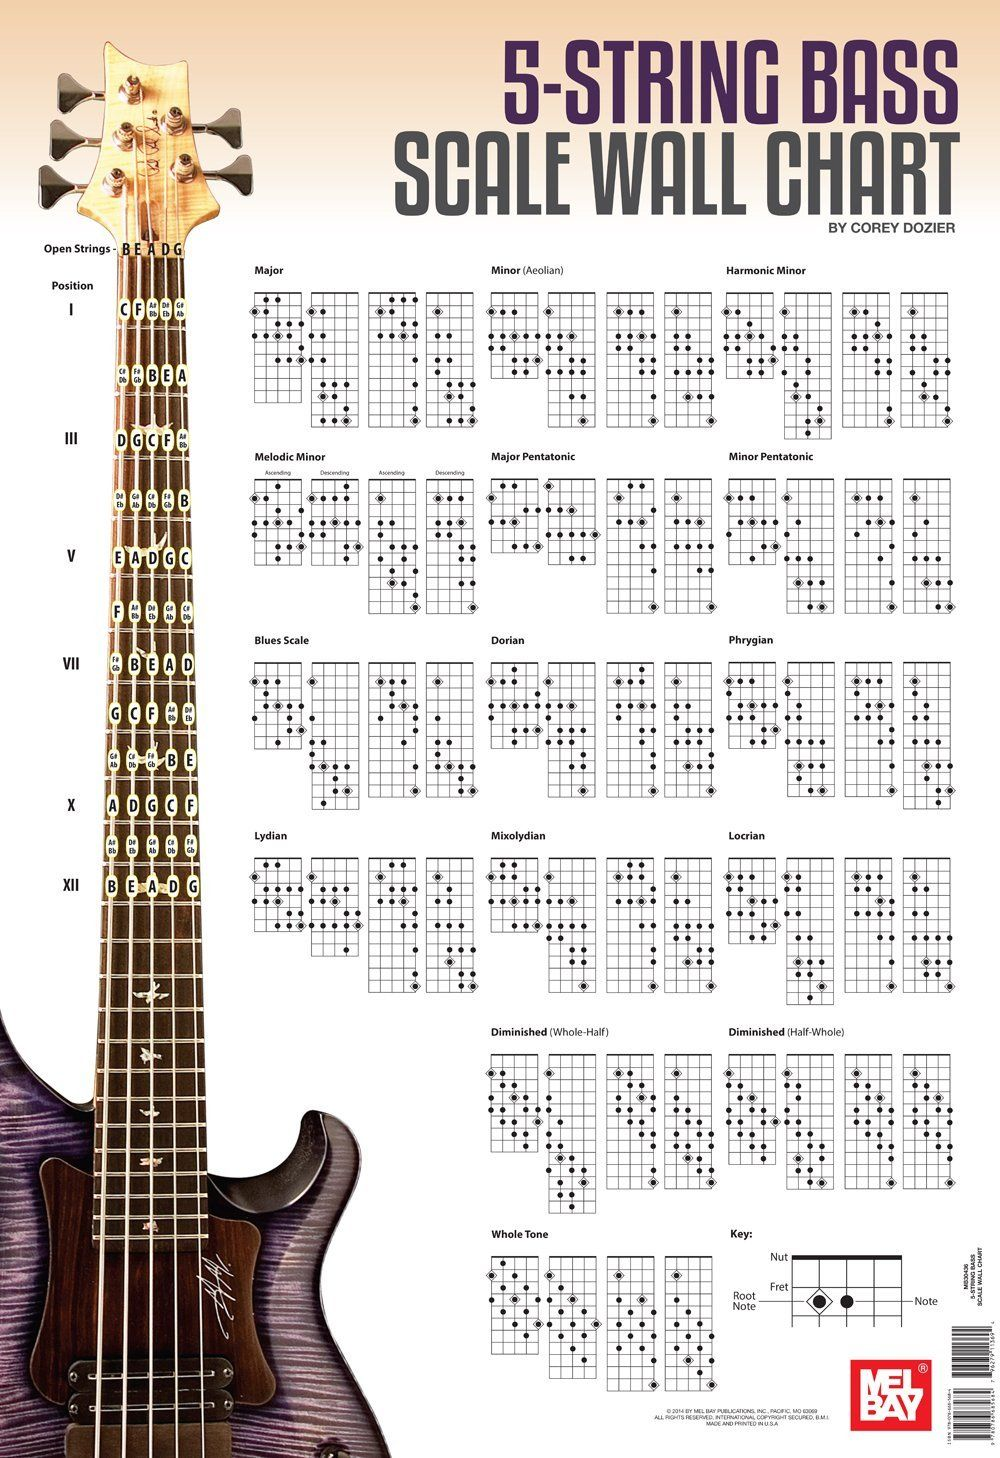 5 string bass scale wall chart music theory in 2019 guitar bass guitar chords bass guitar. Black Bedroom Furniture Sets. Home Design Ideas